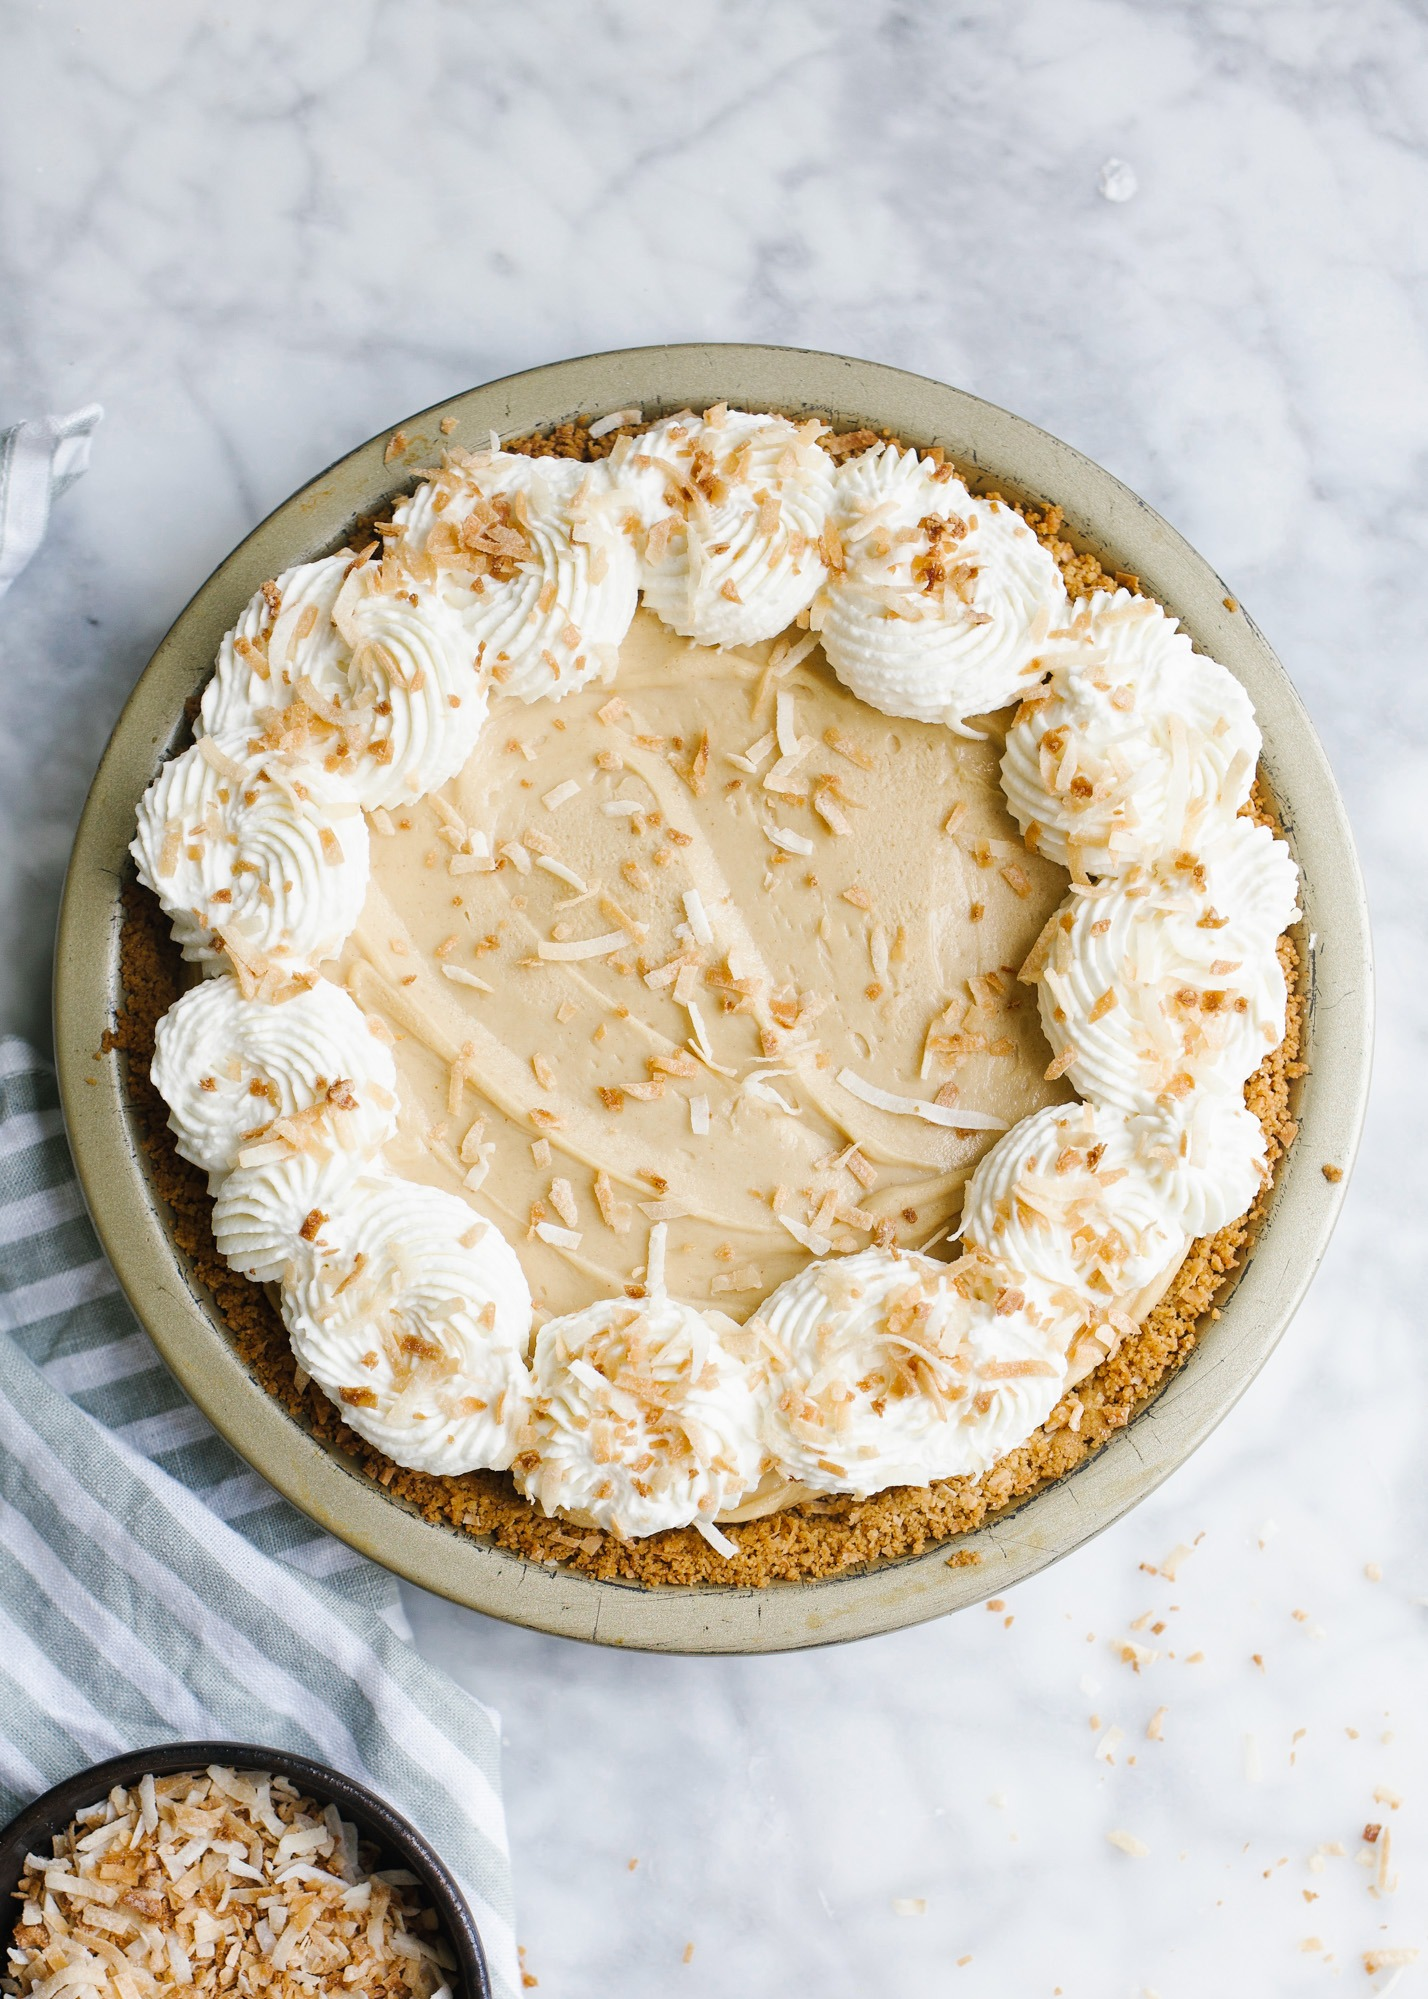 Peanut Butter Coconut Pie by Wood and Spoon blog. This is a fluffy icebox pie made with creamy peanut butter and loads of creamy coconut flavor. The crust can be made with sweetened coconut flakes, butter and either graham crackers or vanilla wafers. This is a quick and simple dessert to make for peanut butter lovers! Find the recipe and how-to on thewoodandspoon.com